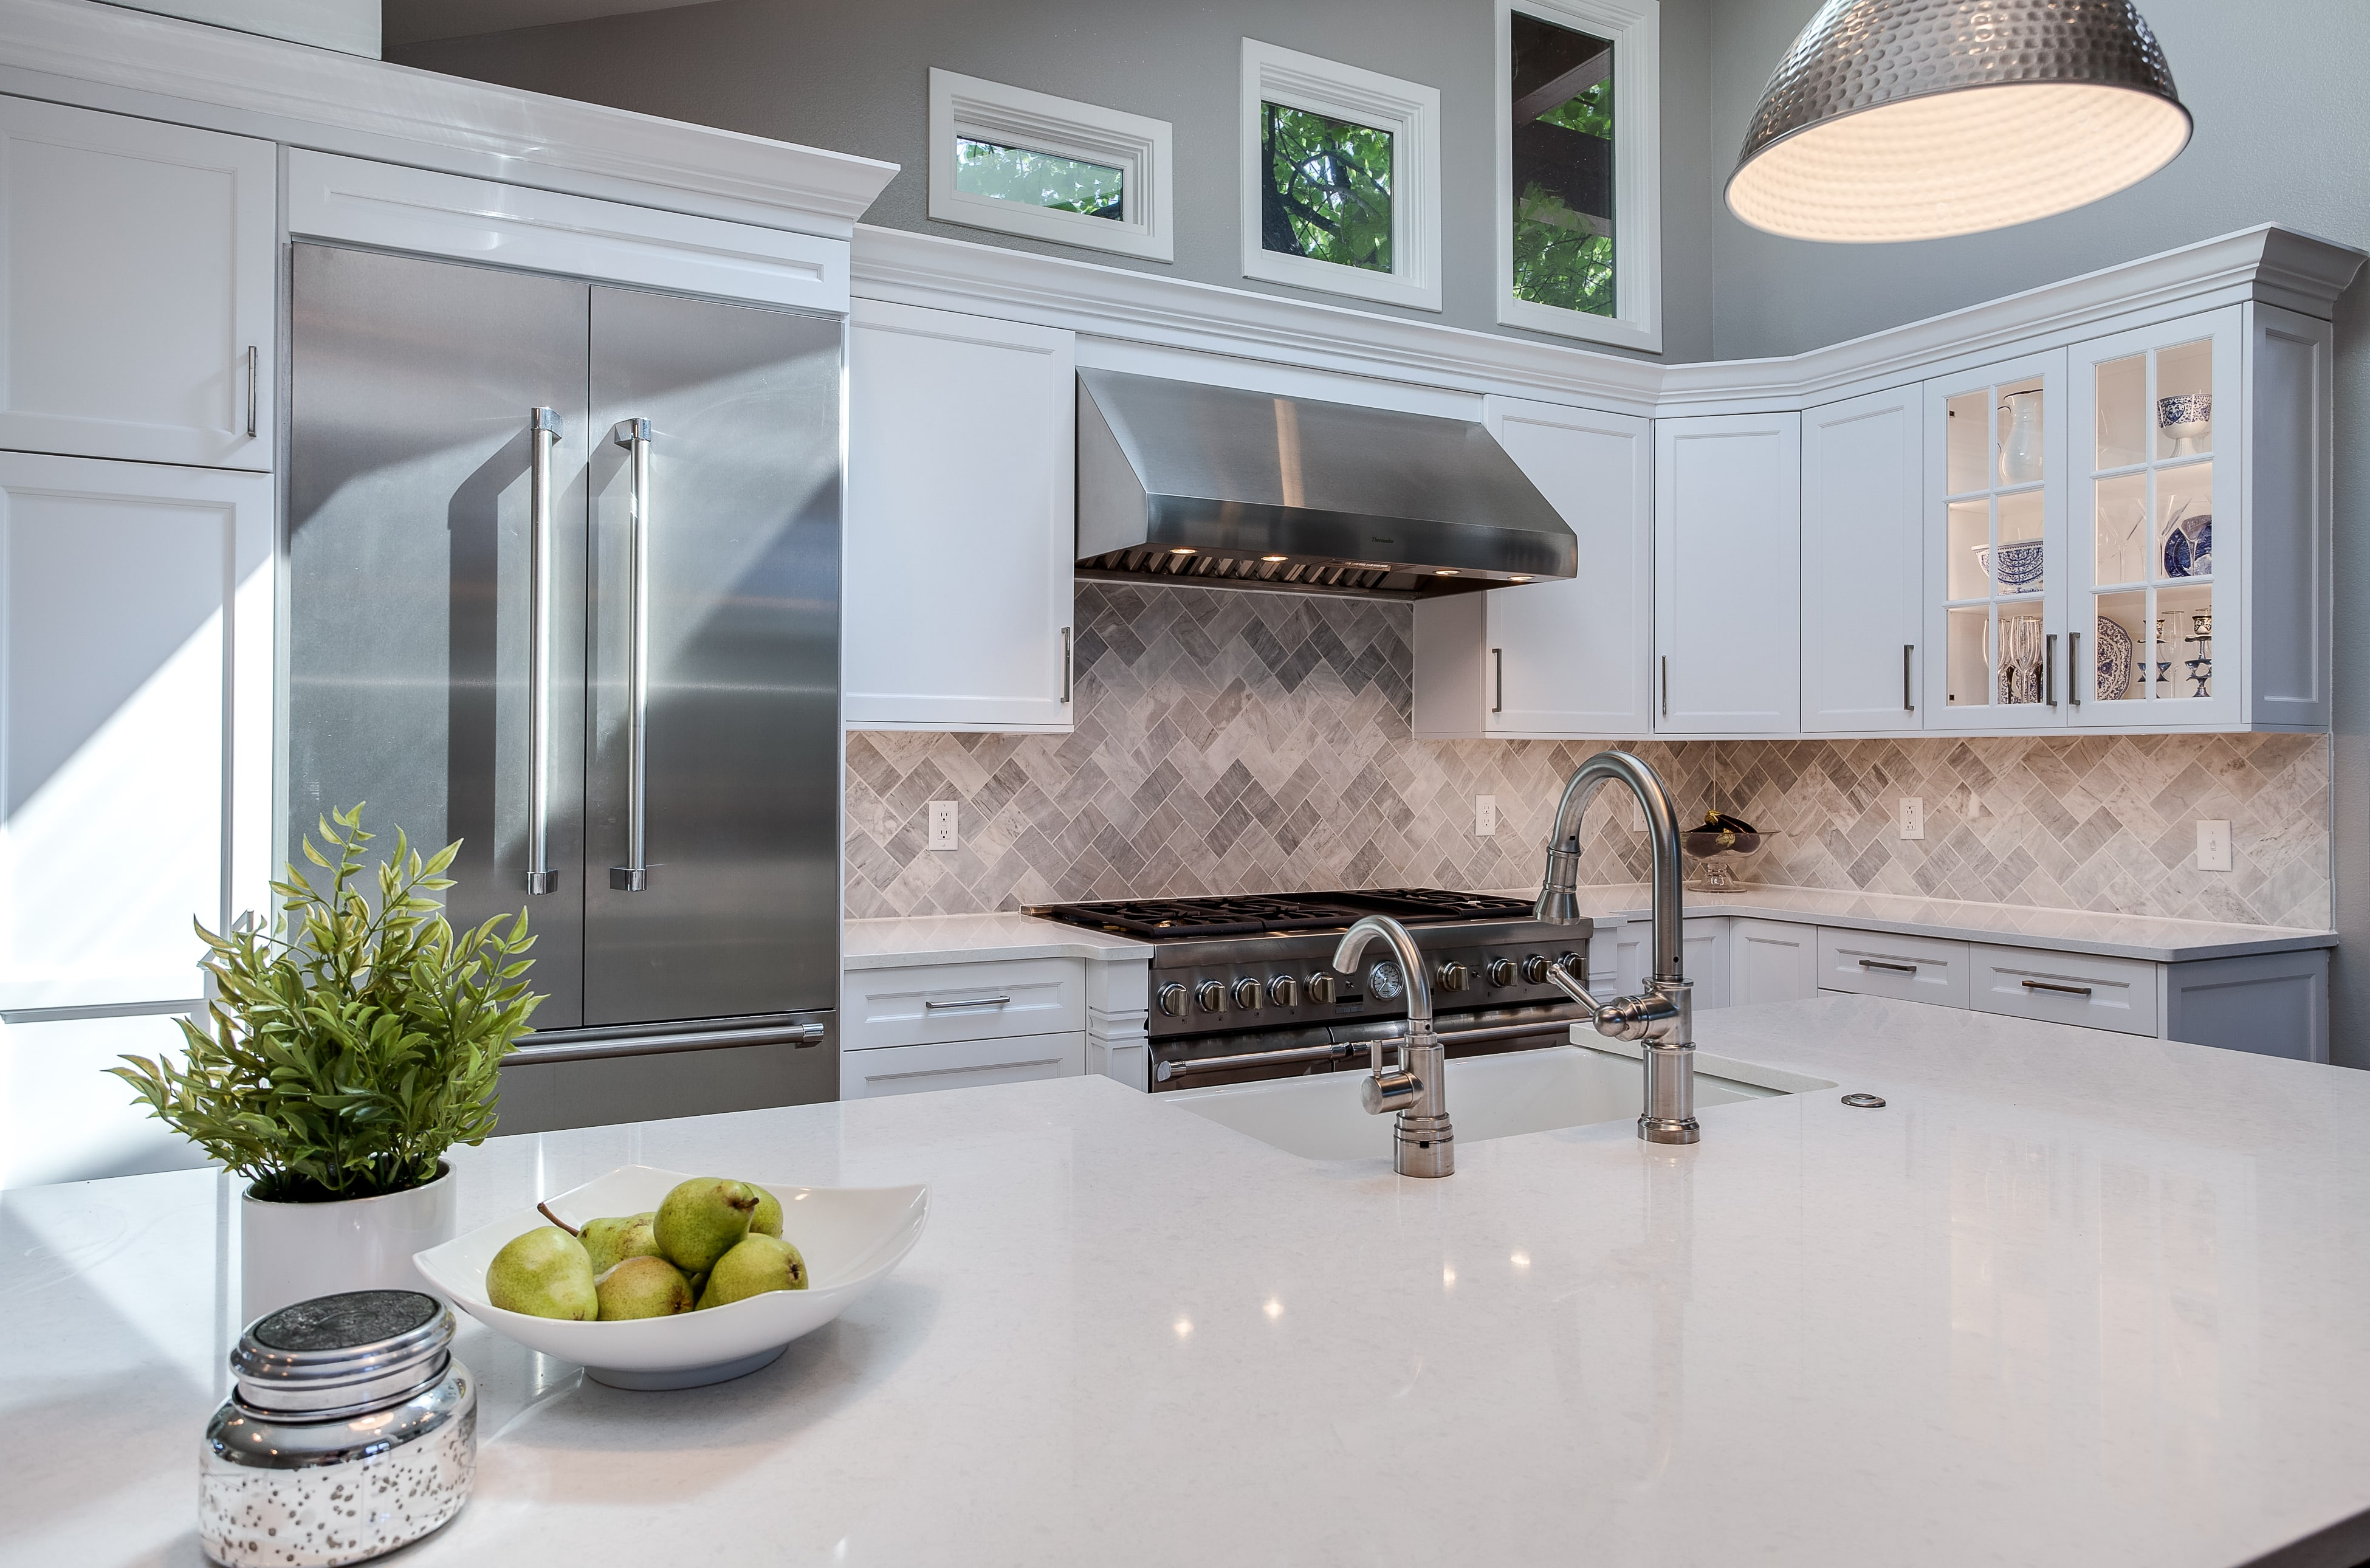 White shaker kitchen cabinets with white marble countertops